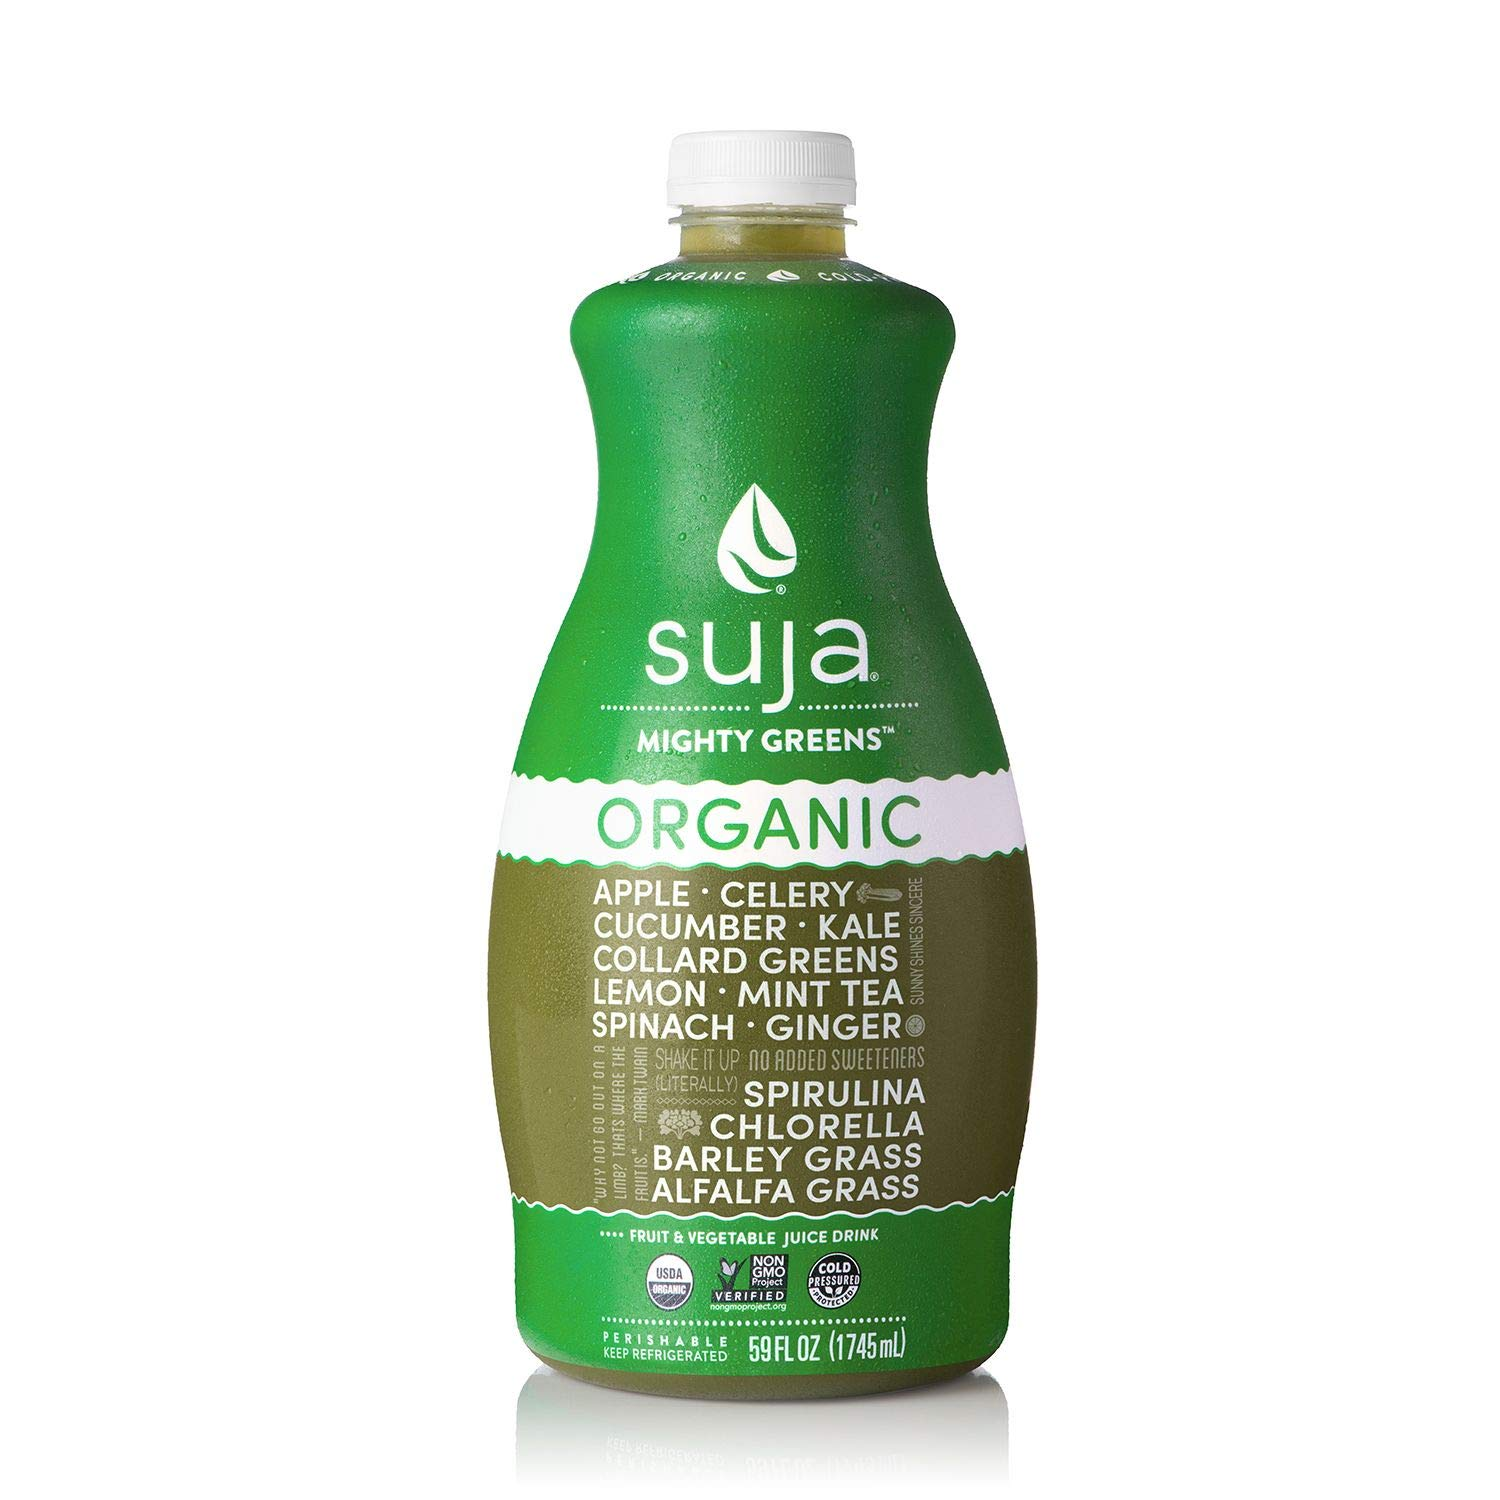 Suja Mighty Greens Organic Fruit & Vegetable Juice Drink 59 fl. oz. bottle. A1